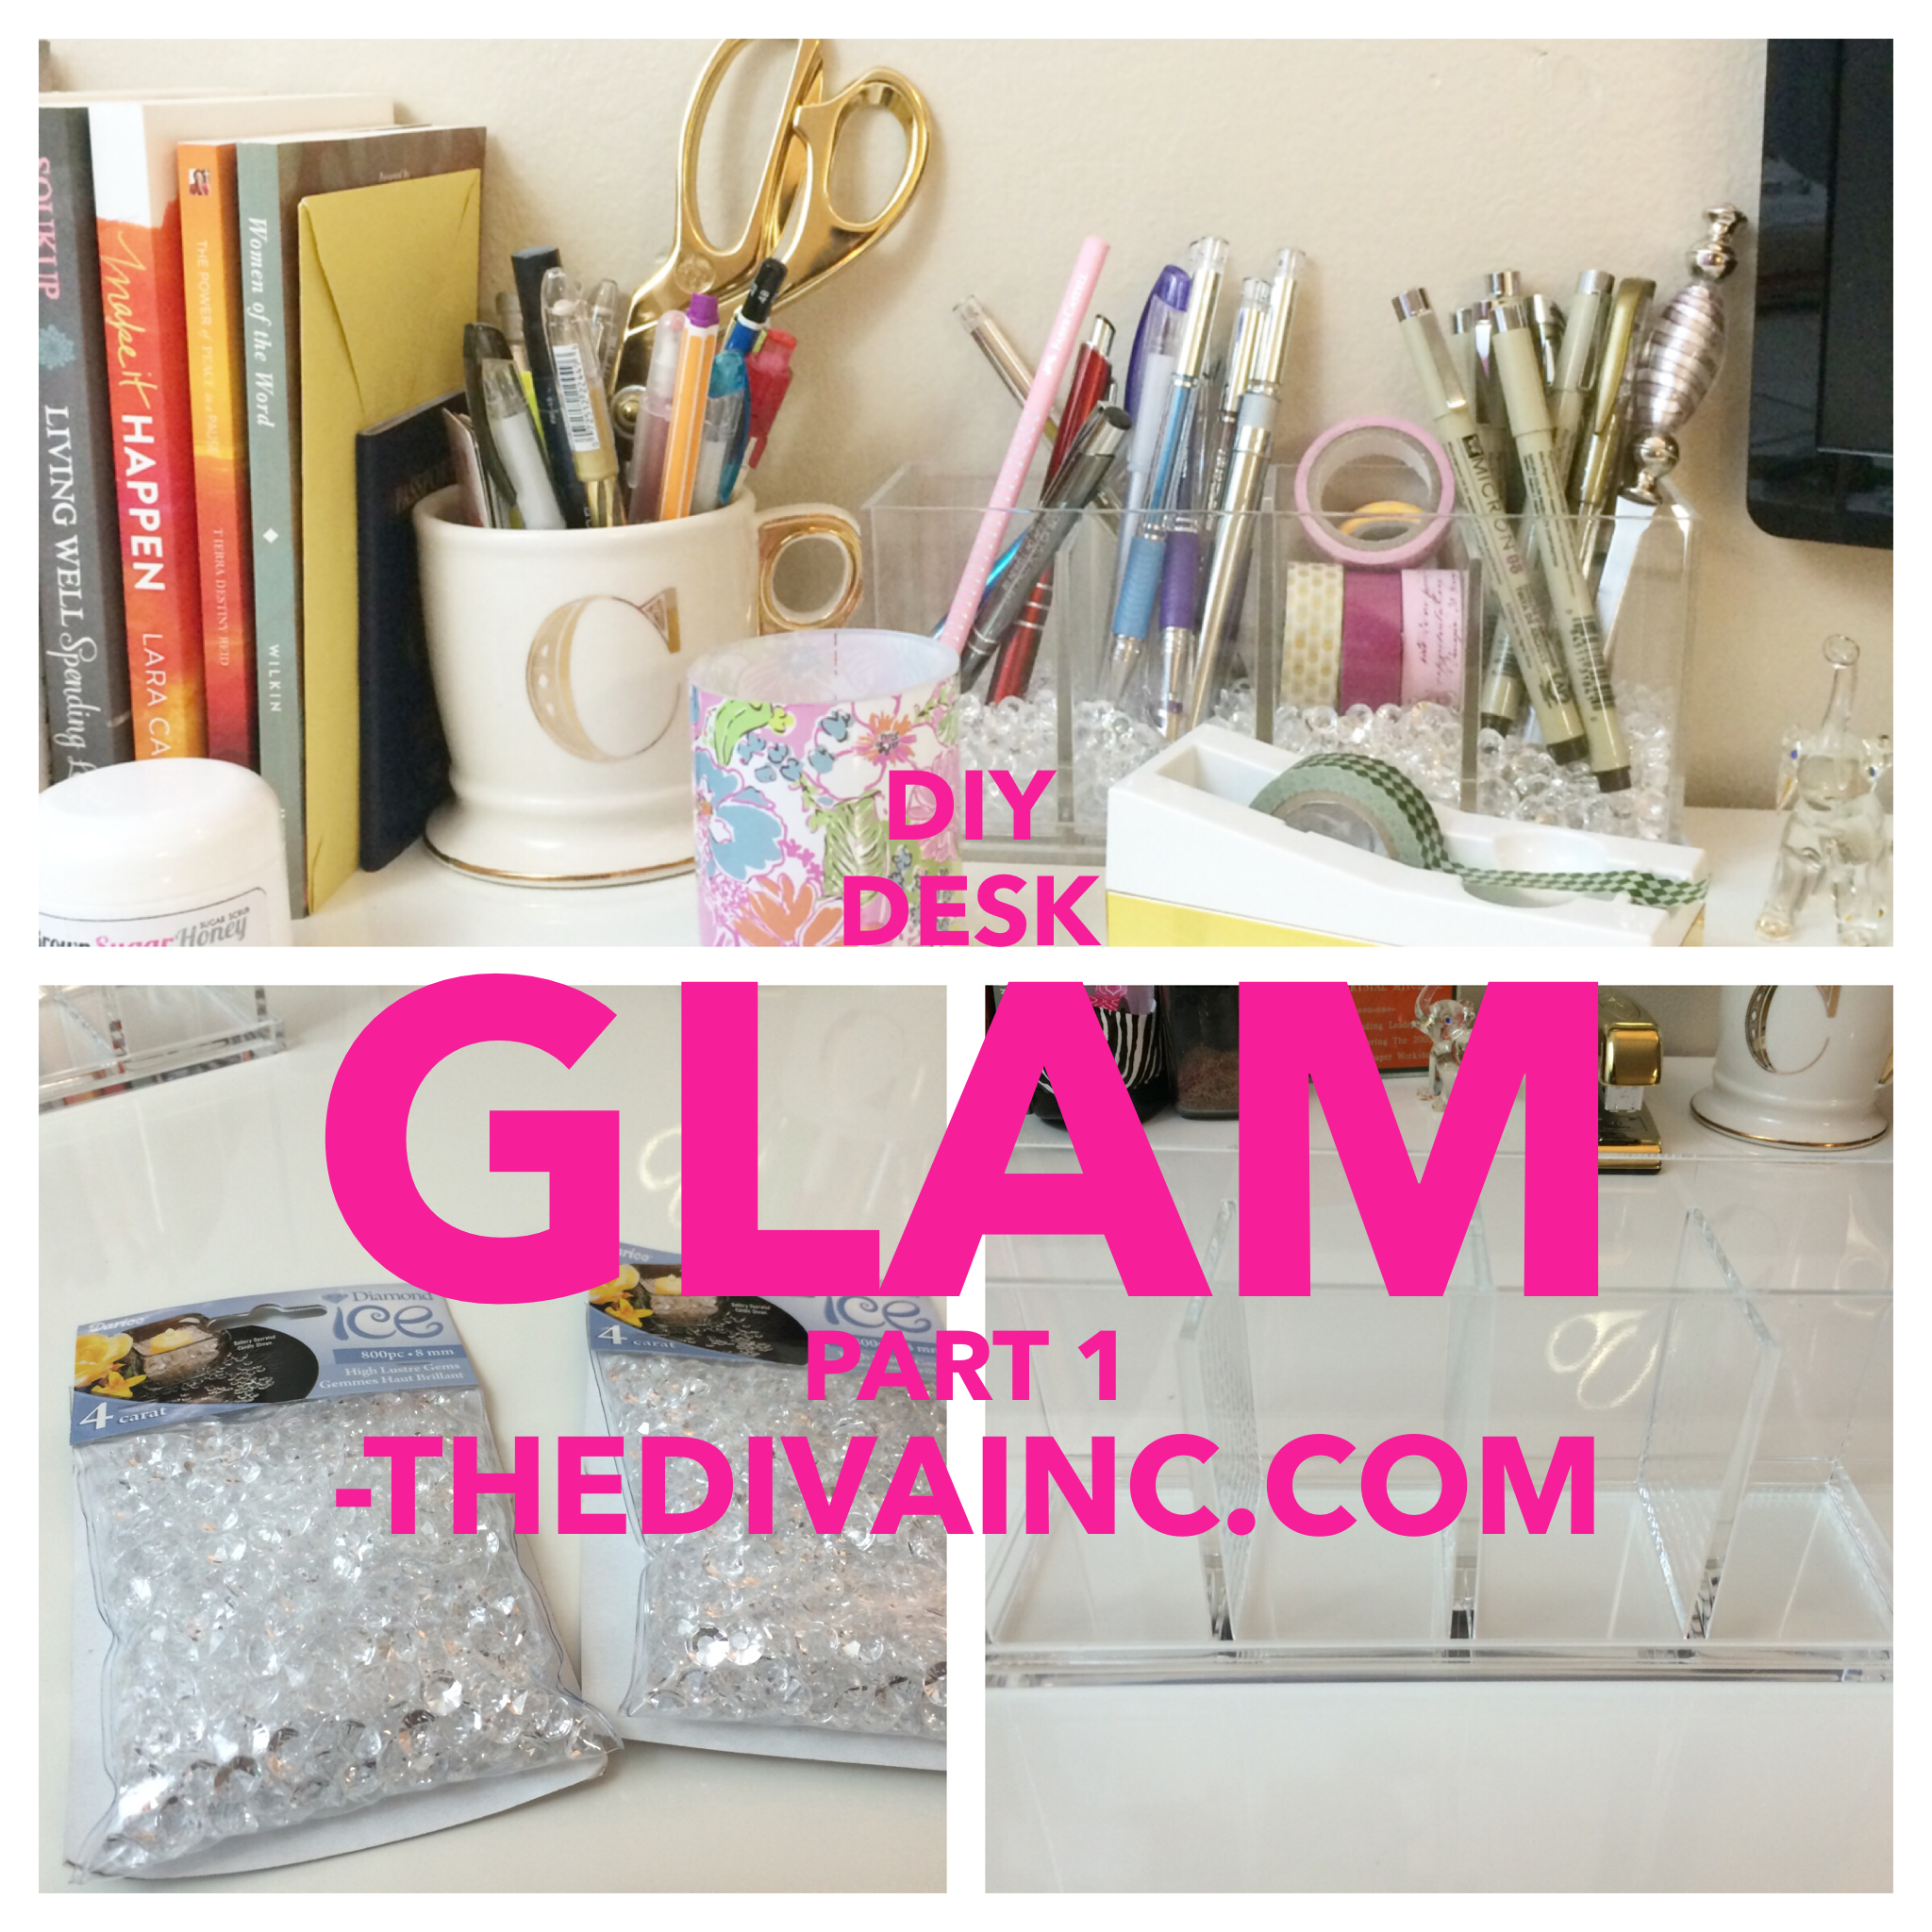 diy desk glam part 1 the diva inc magazine the